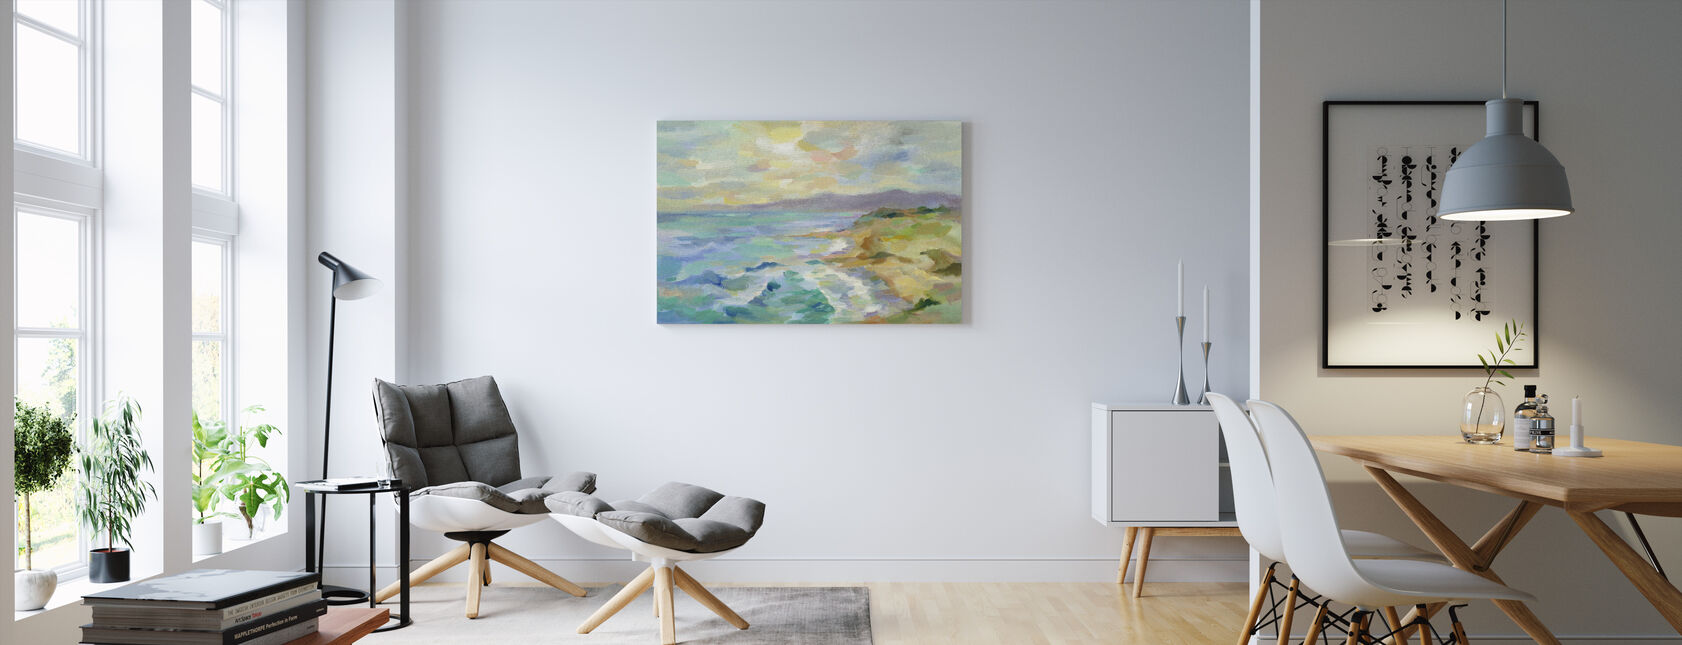 Dunes by the Sea - Canvas print - Living Room